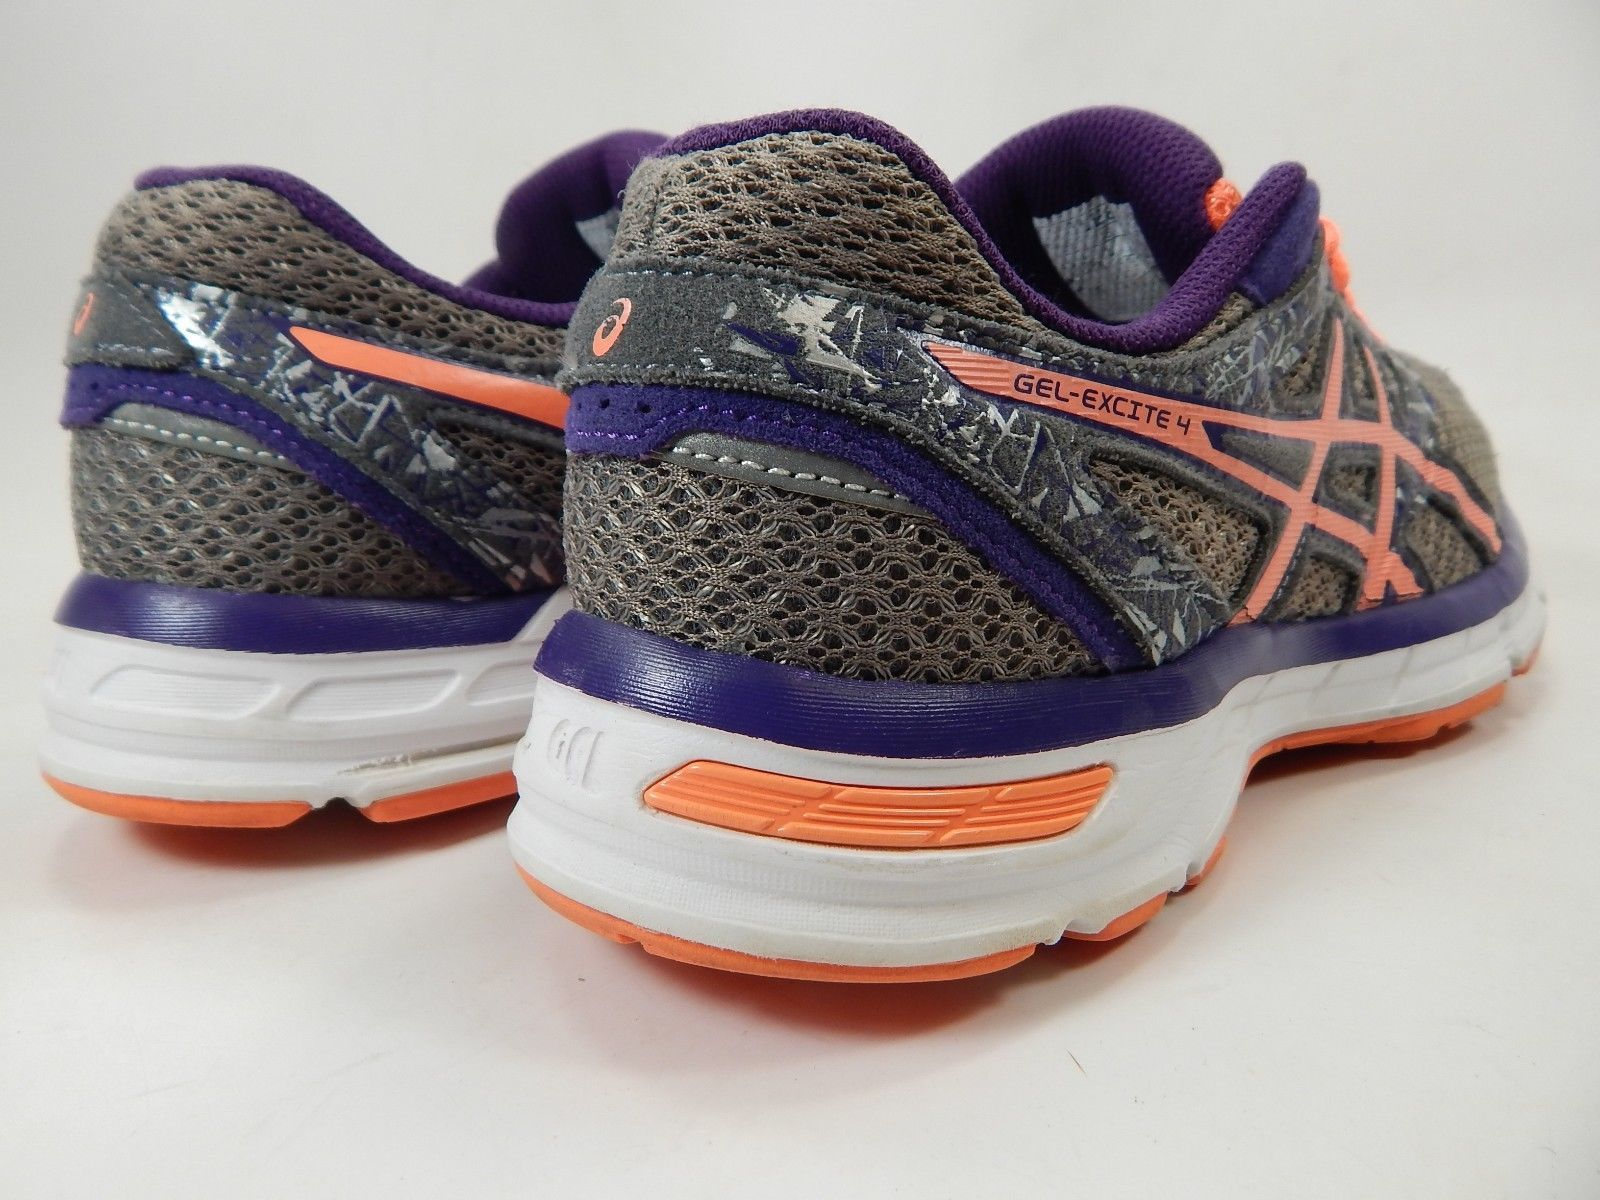 Asics Gel Excite 4 Size US 8 M (B) EU 39.5 Women's Running Shoes Gray T5E8N